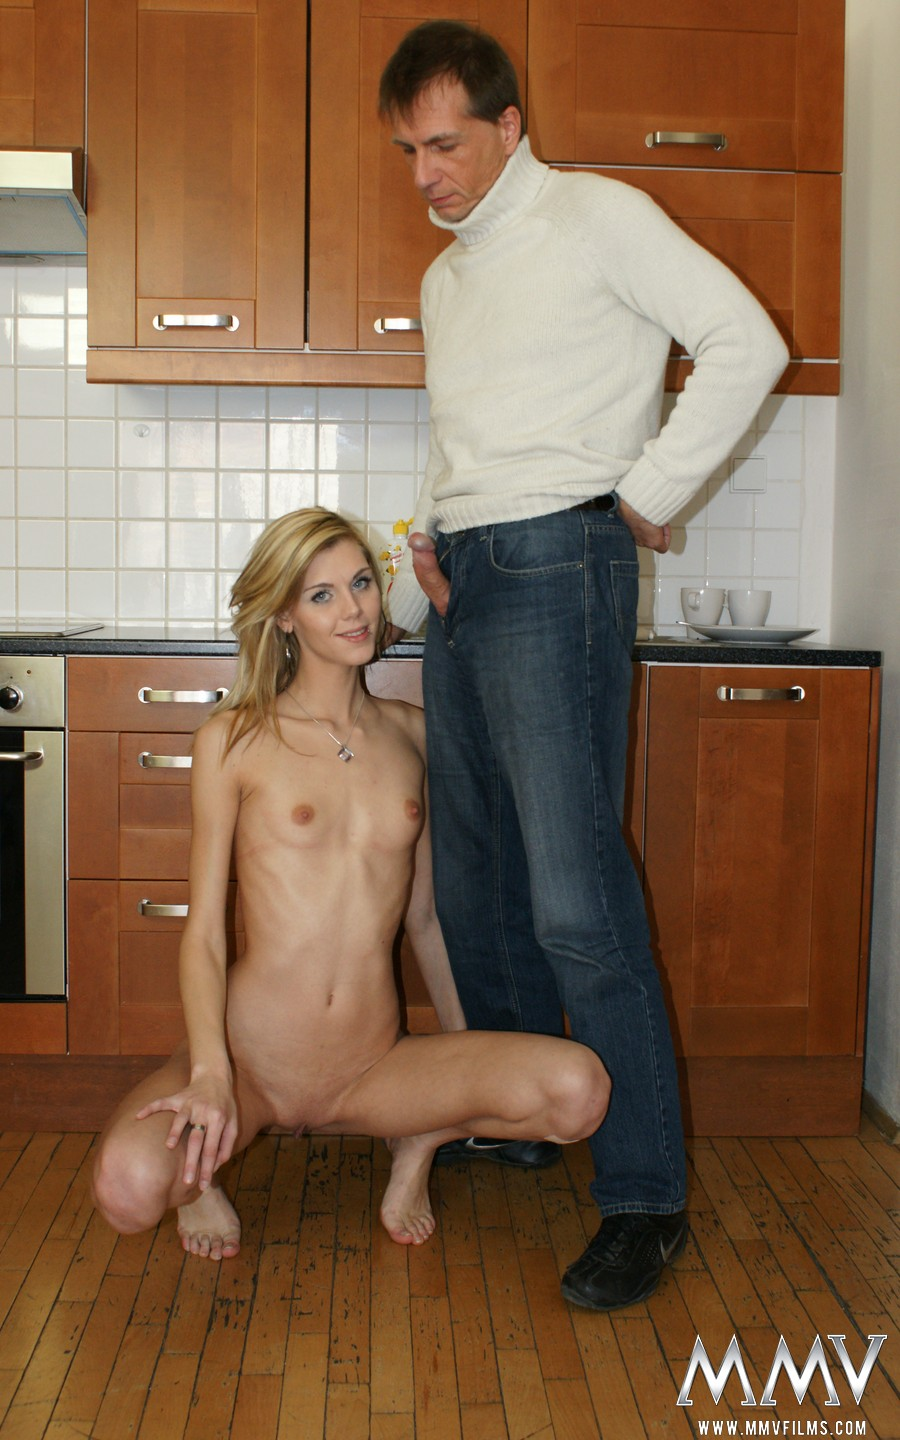 Mmv films teen german couple takes counseling - 2 part 6